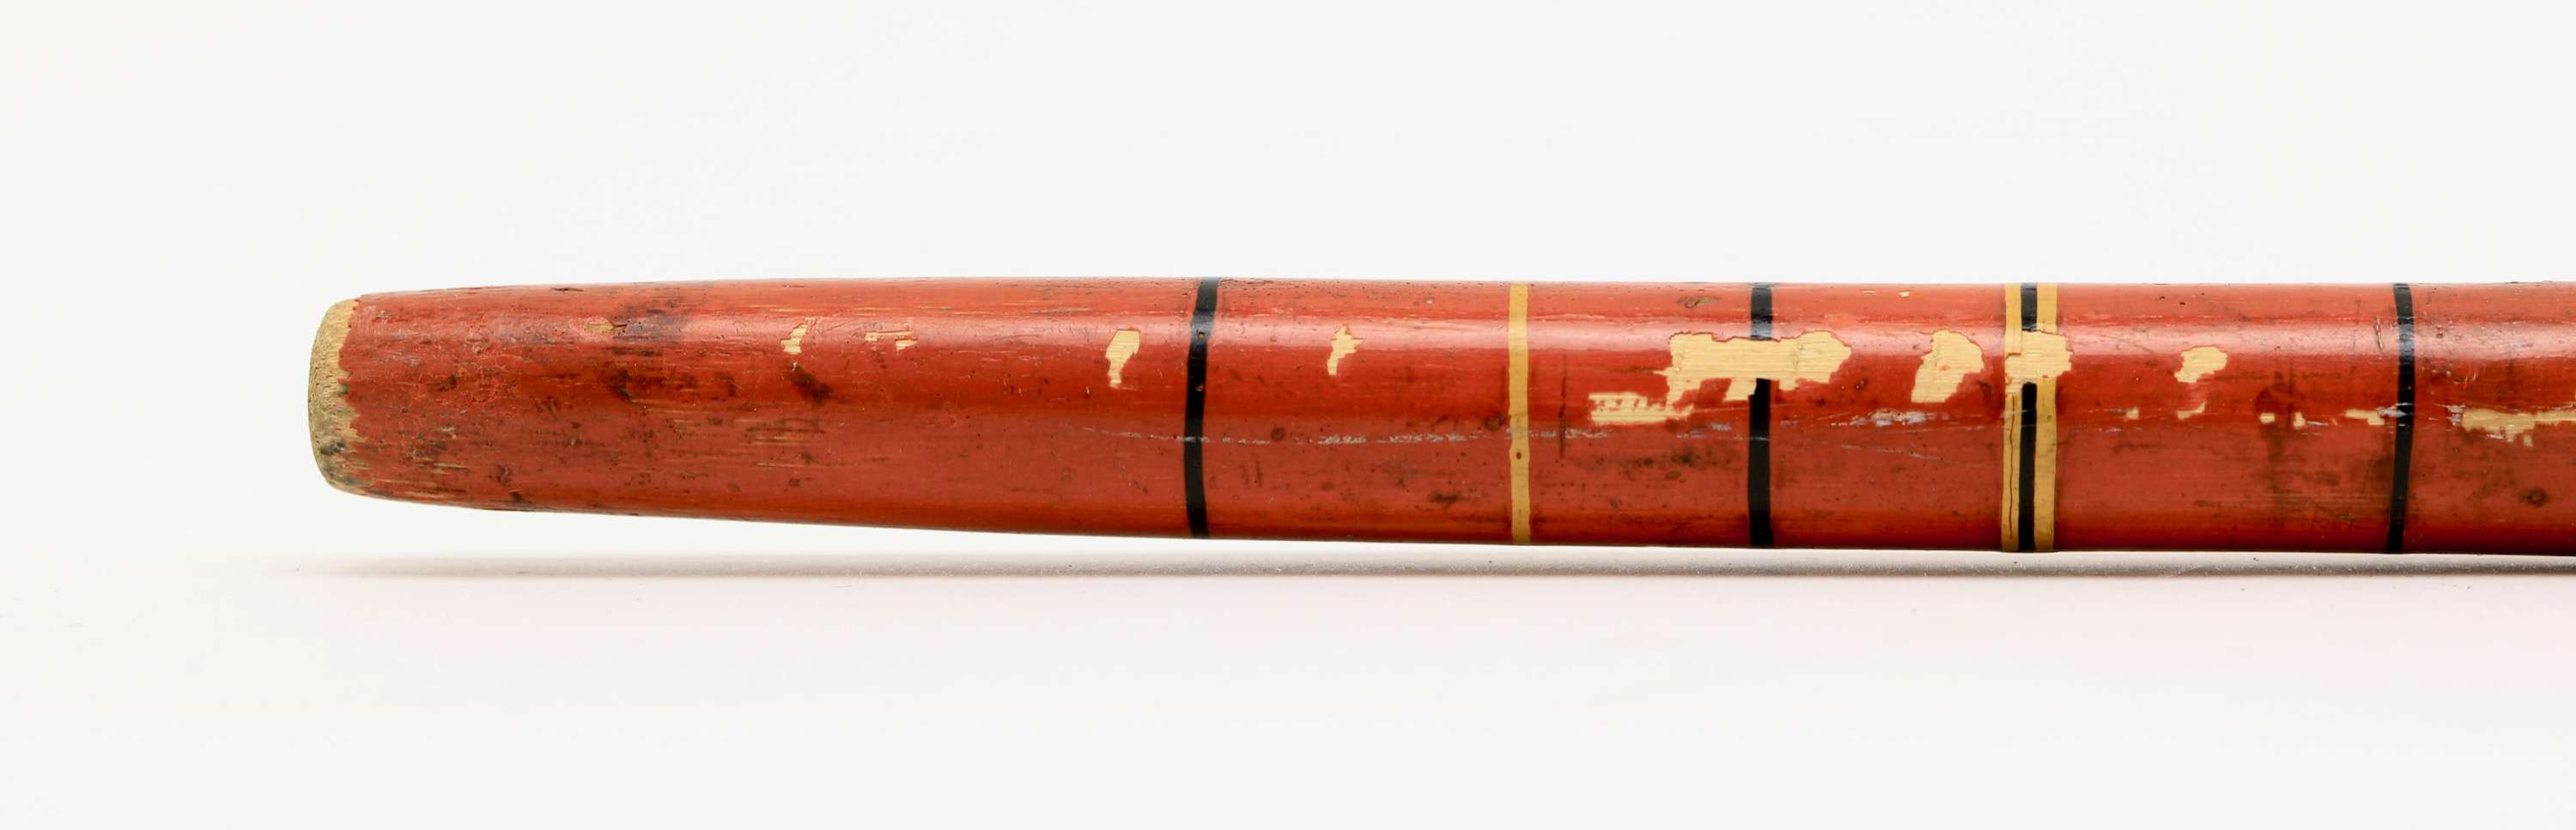 Sinhalese lacquered cane